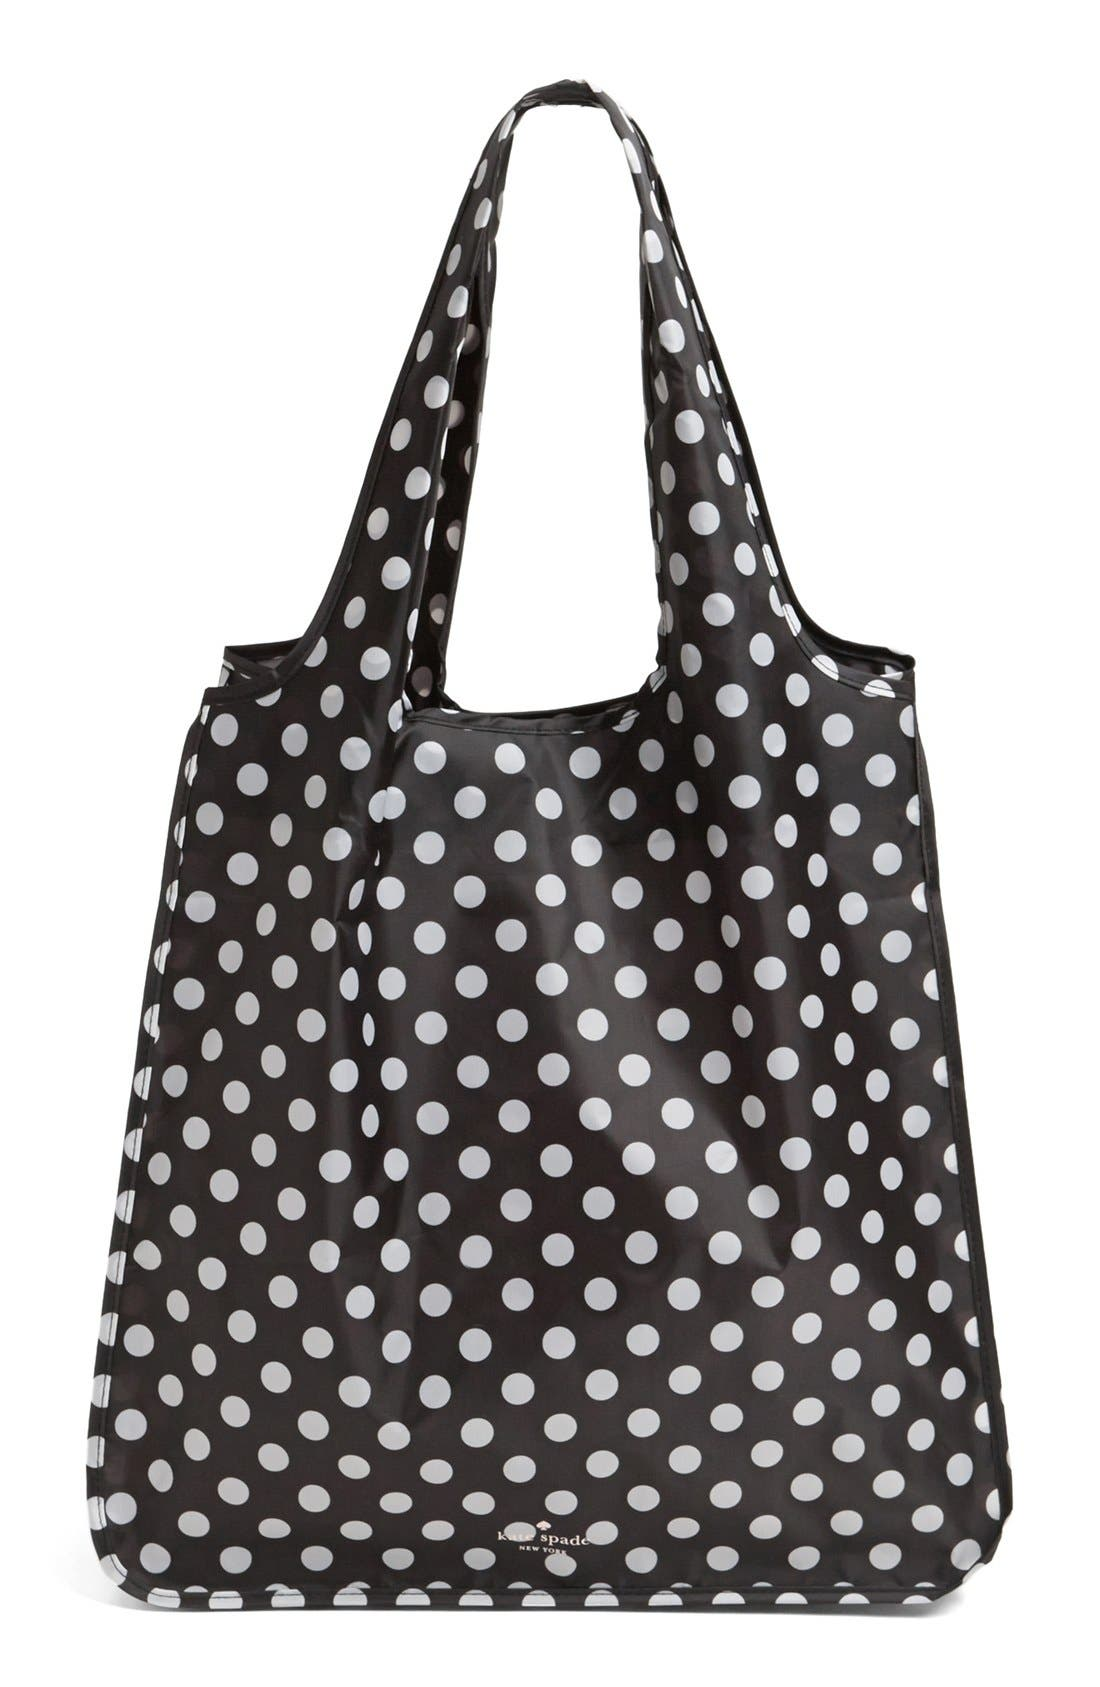 KATE SPADE NEW YORK polka dot reusable shopping tote